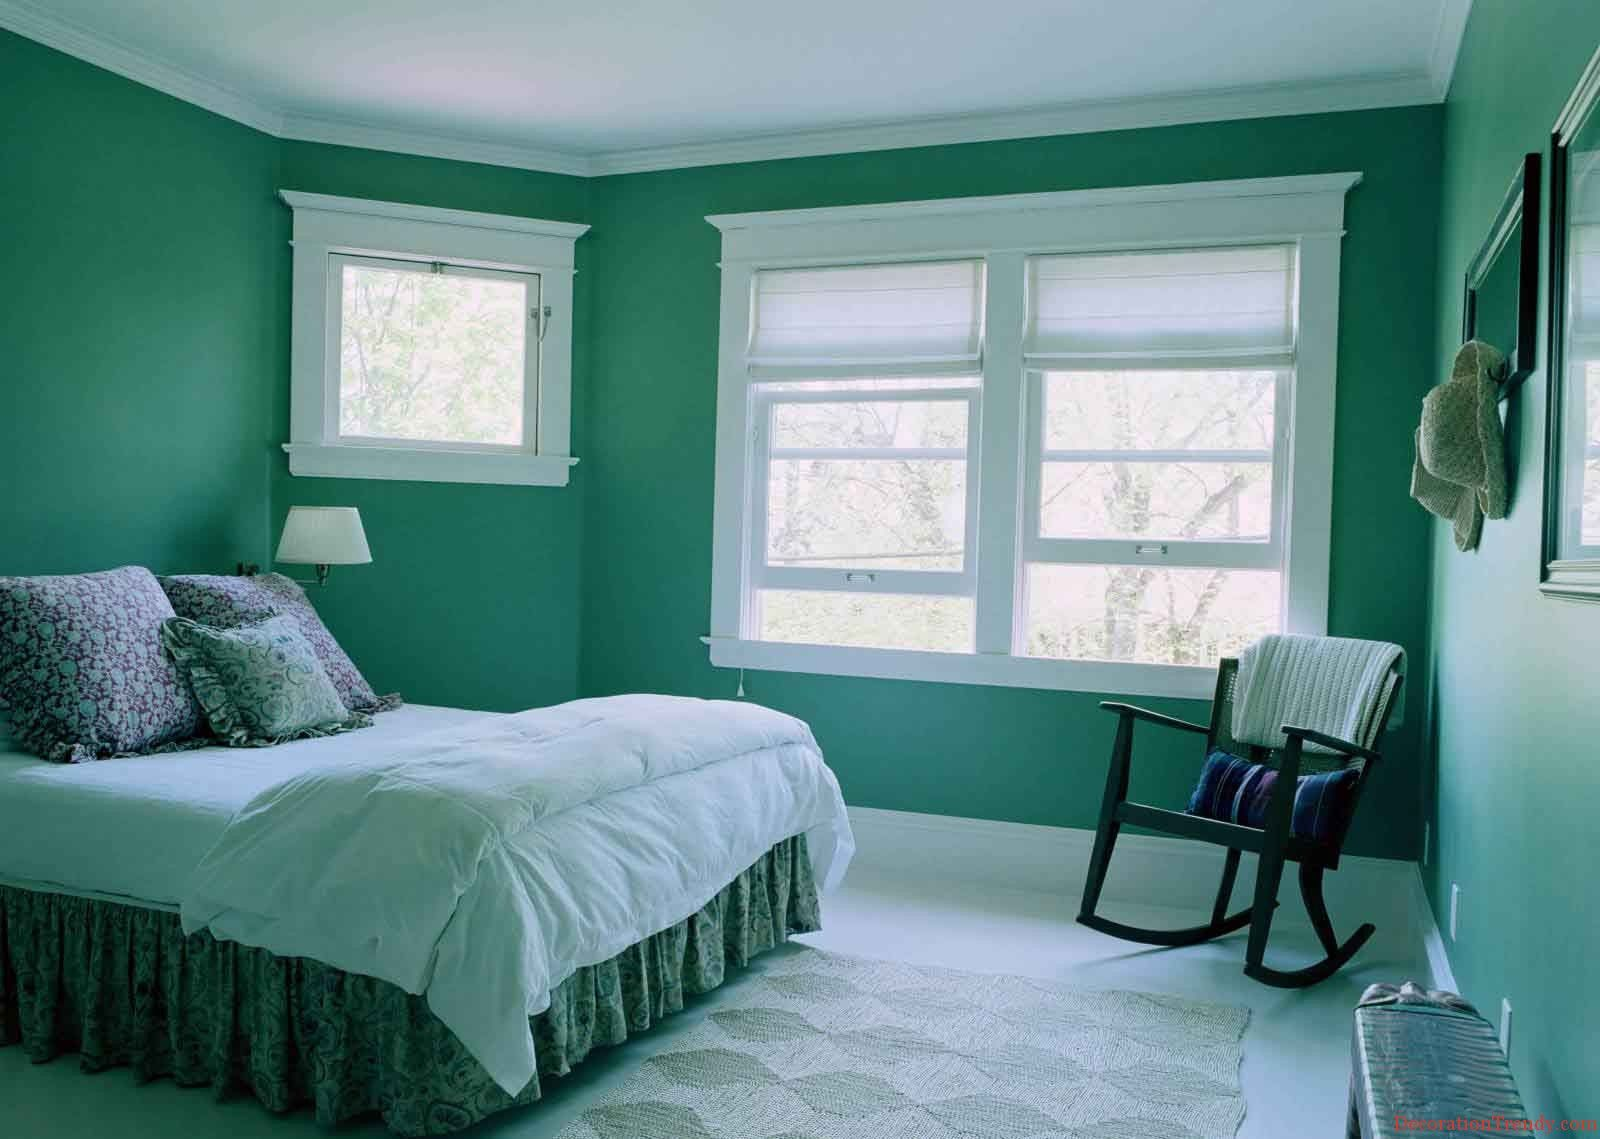 Blue and green bedrooms for girls - Wall Paint Colors 2014 1600 X 1139 Disclaimer We Do Not Own Any Of These Pictures Graphics All The Images Are Not Under O